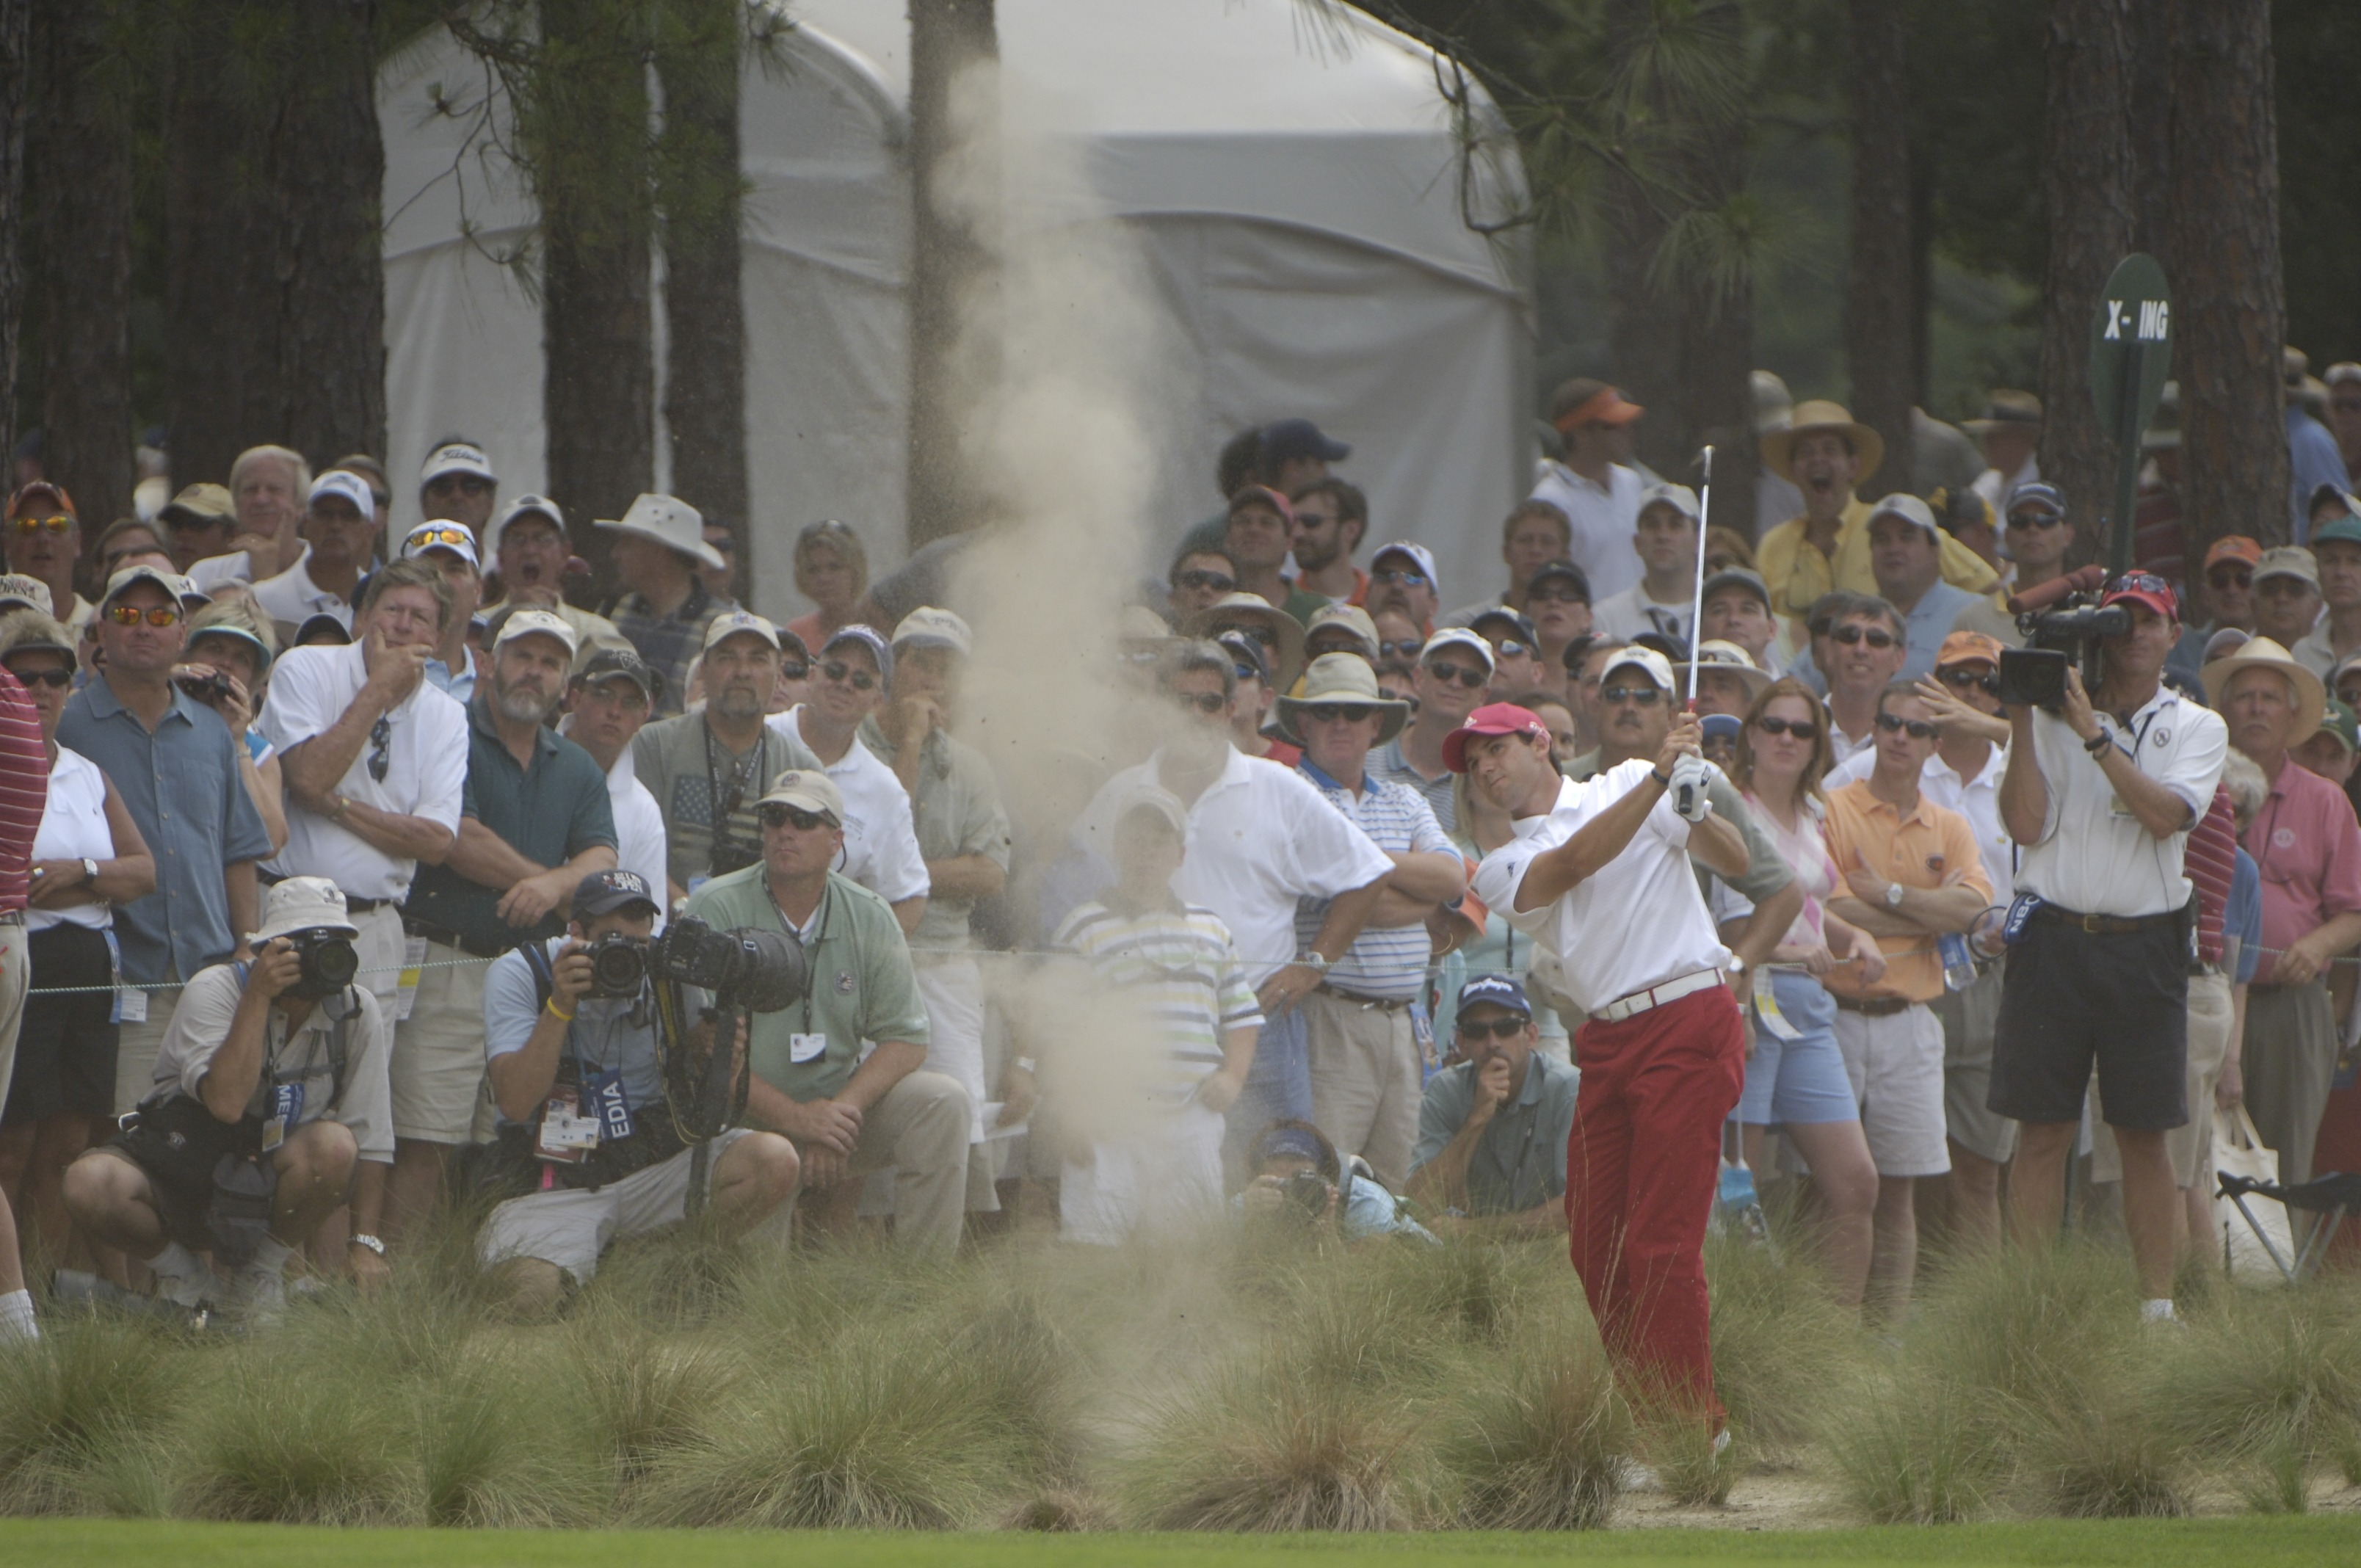 2005 U.S. Open                           Pinehurst No. 2                           Pinehurst, N.C.                           Garcia was at even par going into the weekend at Pinehurst, but a birdie-free 75 — which included 32 putts — Saturday shot him out of contention. A final round 70 was not enough, and Garcia finished tied for third.